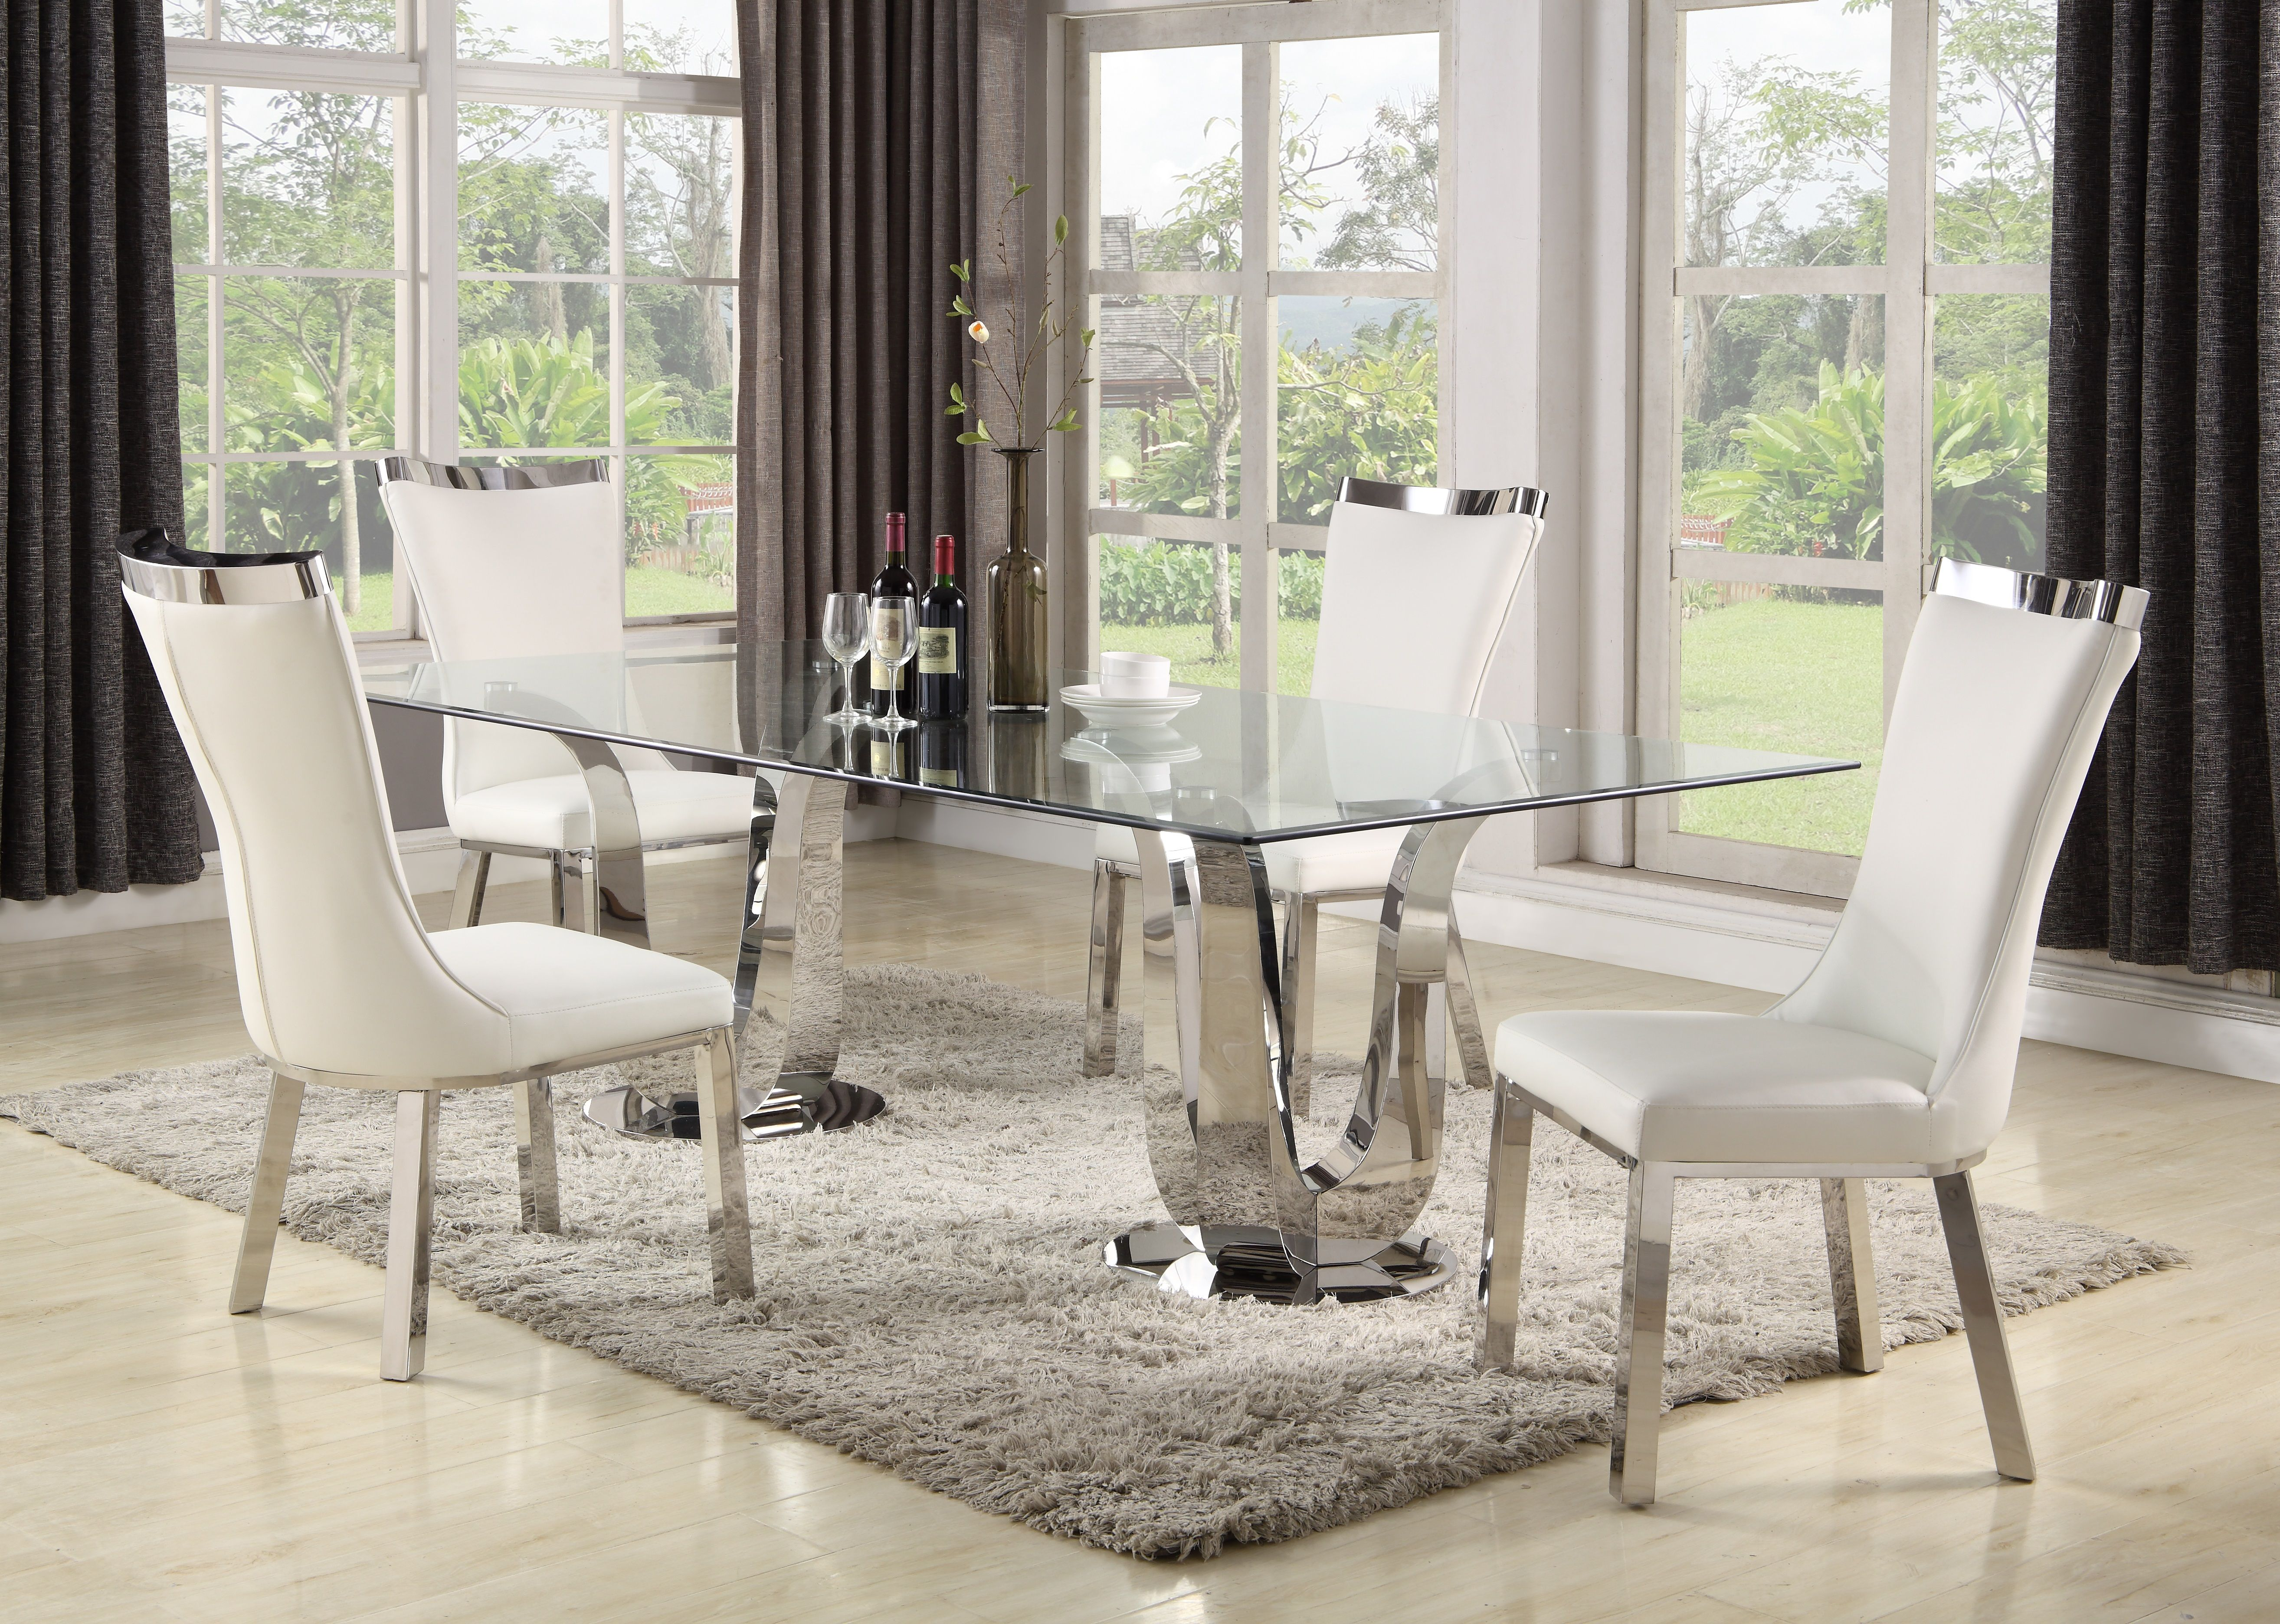 This Contemporary Rectangular Dining Set Adds Elegance To Any